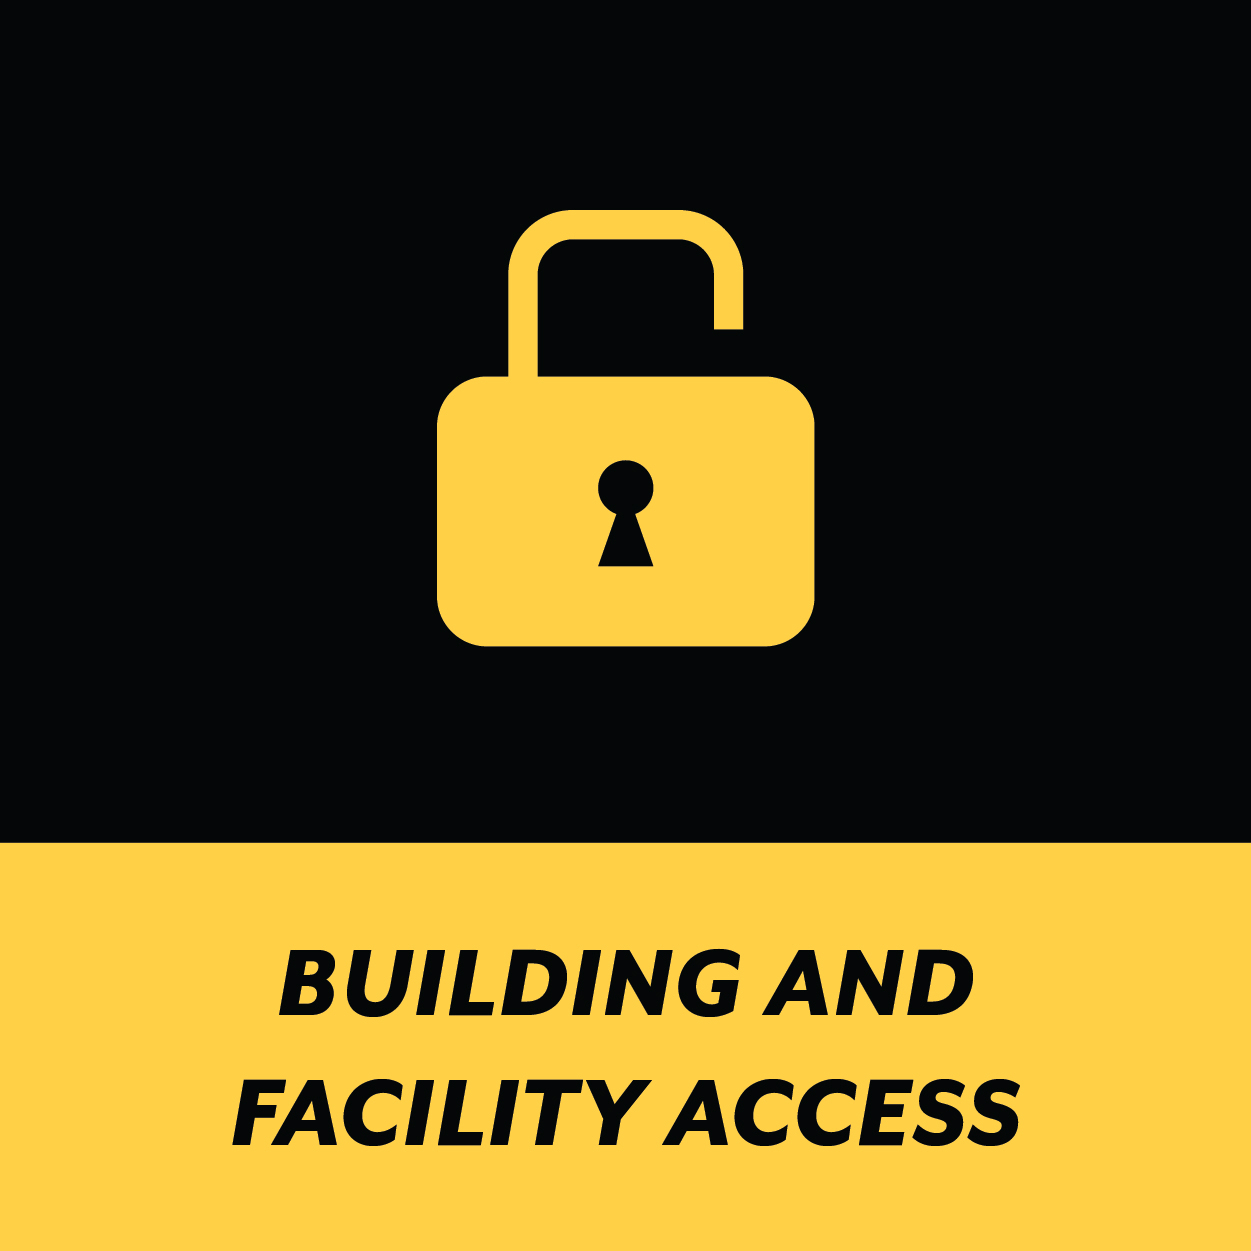 Building and Facility Access